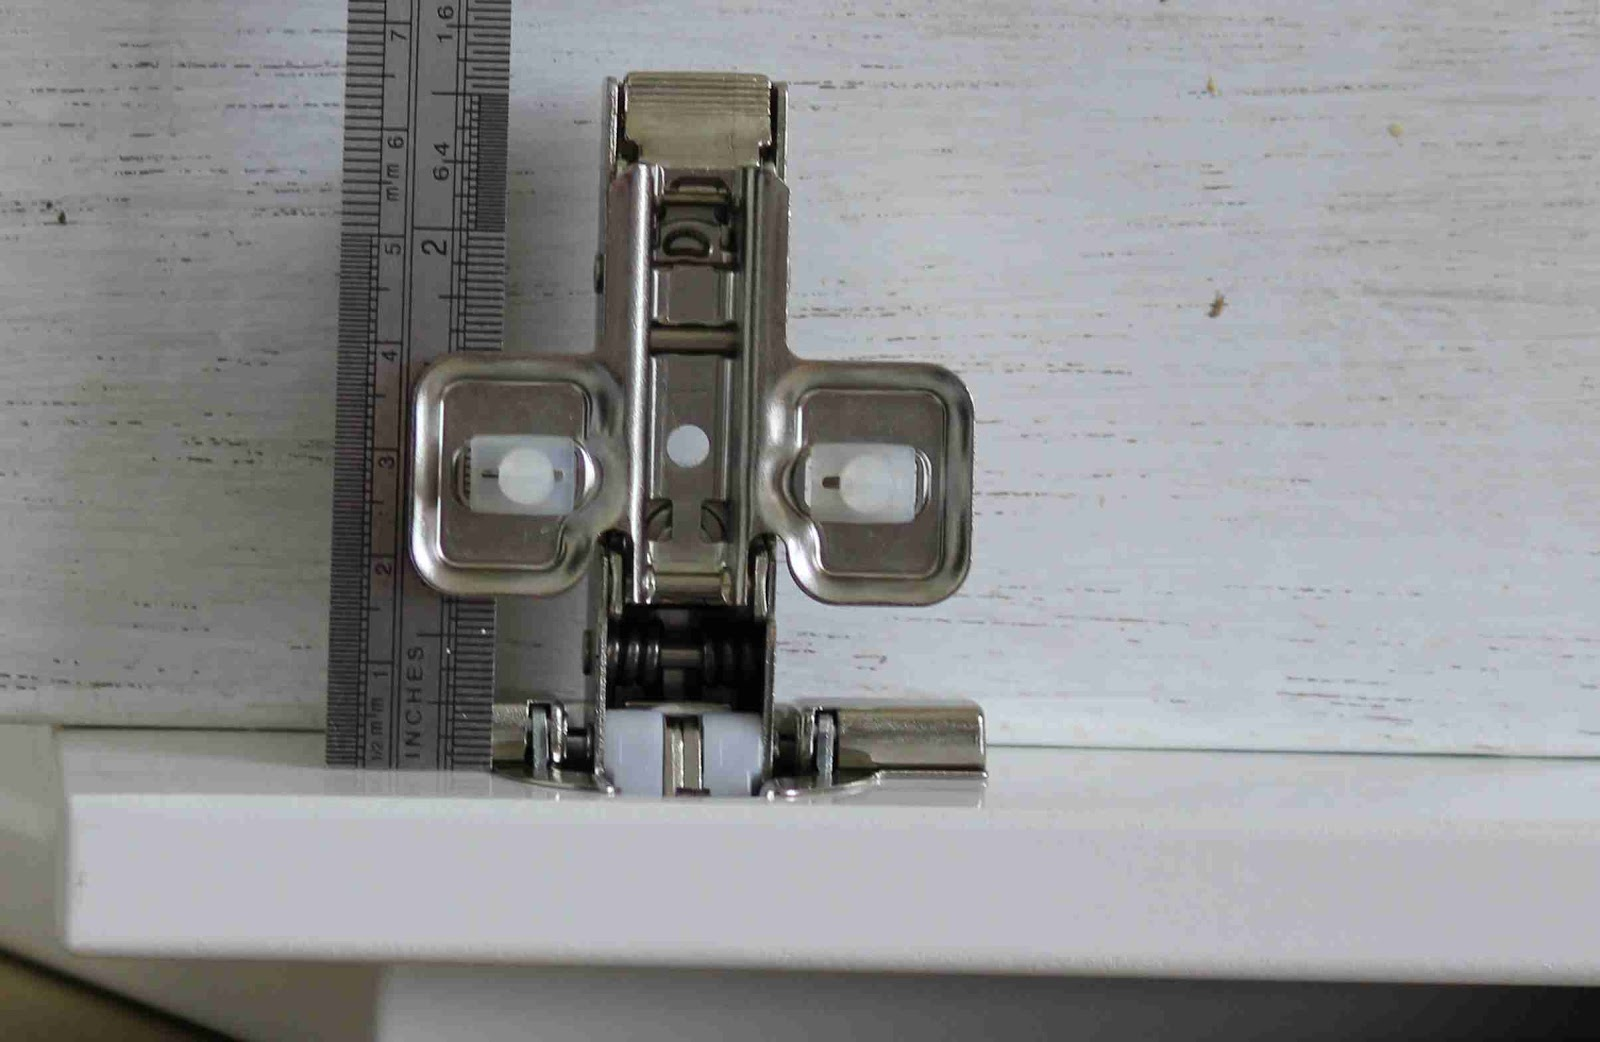 blog de vk5hse: ikea mounting hole dimensions - in case you need